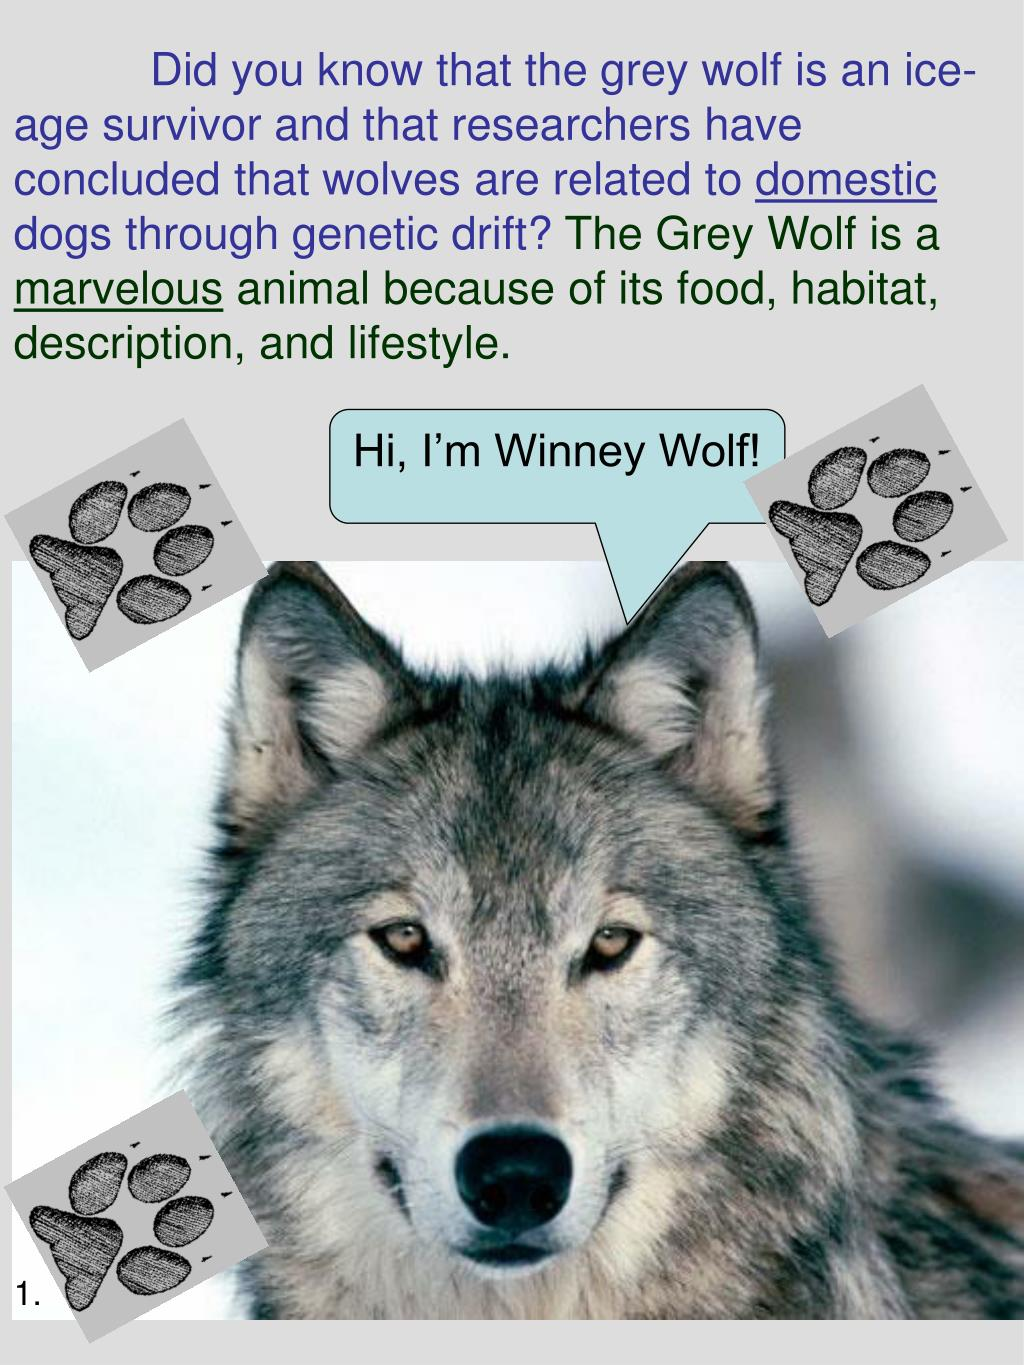 Did you know that the grey wolf is an ice-age survivor and that researchers have concluded that wolves are related to